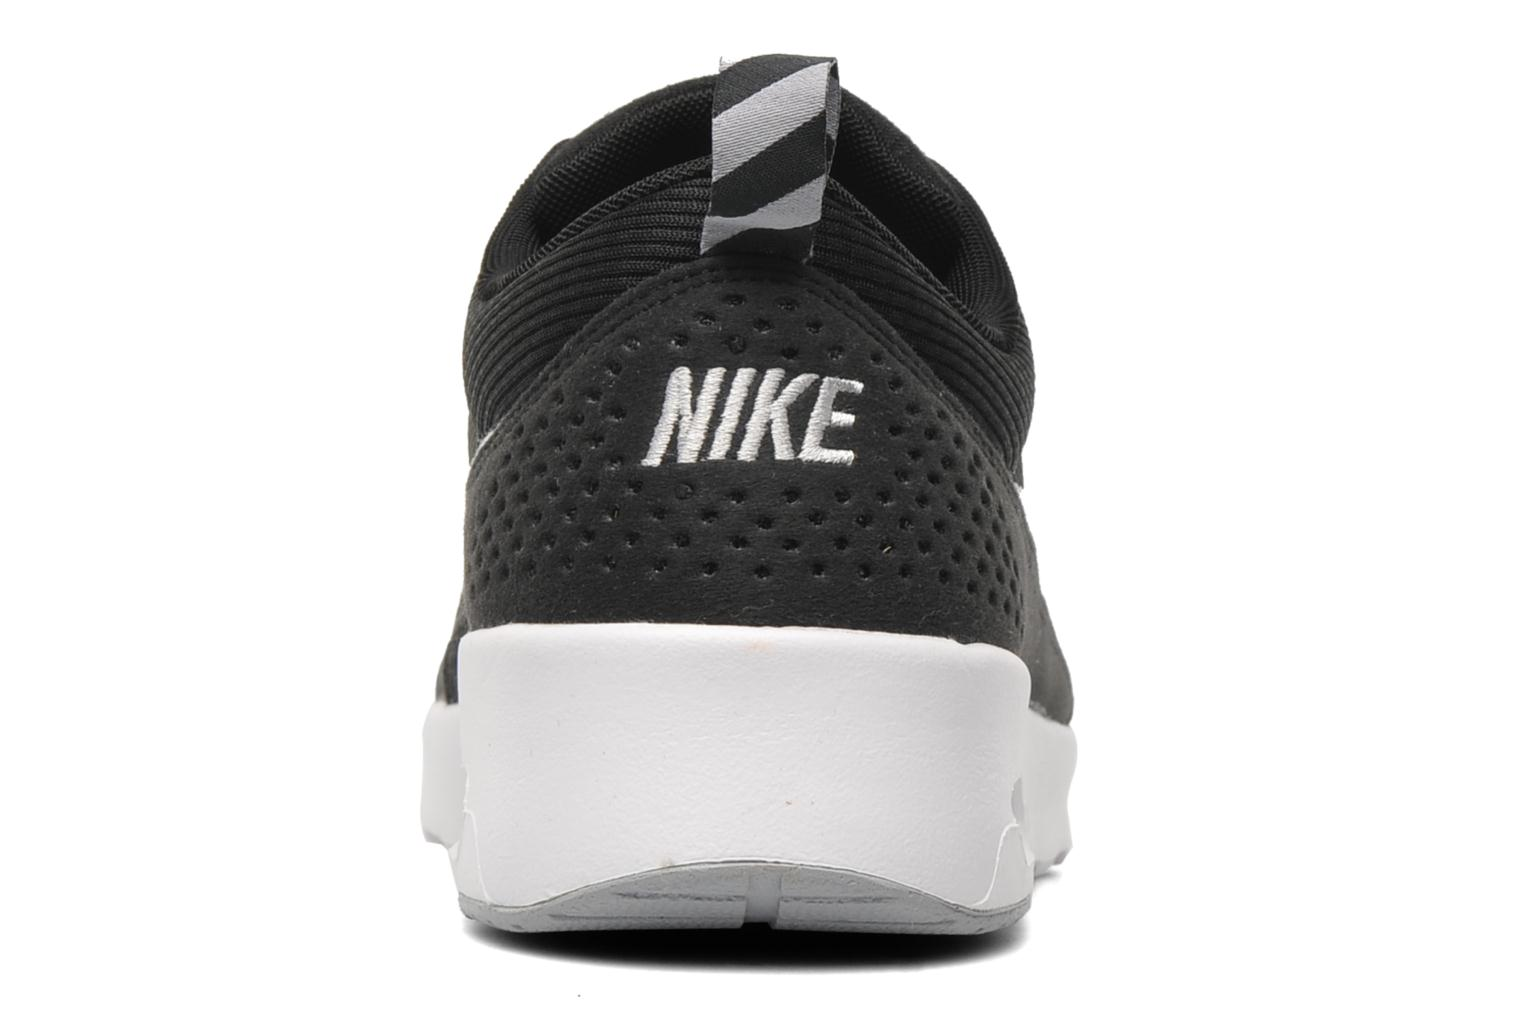 speical offer best online wholesale outlet Nike Air Max Thea Flash All Black Friday Night | The Centre ...